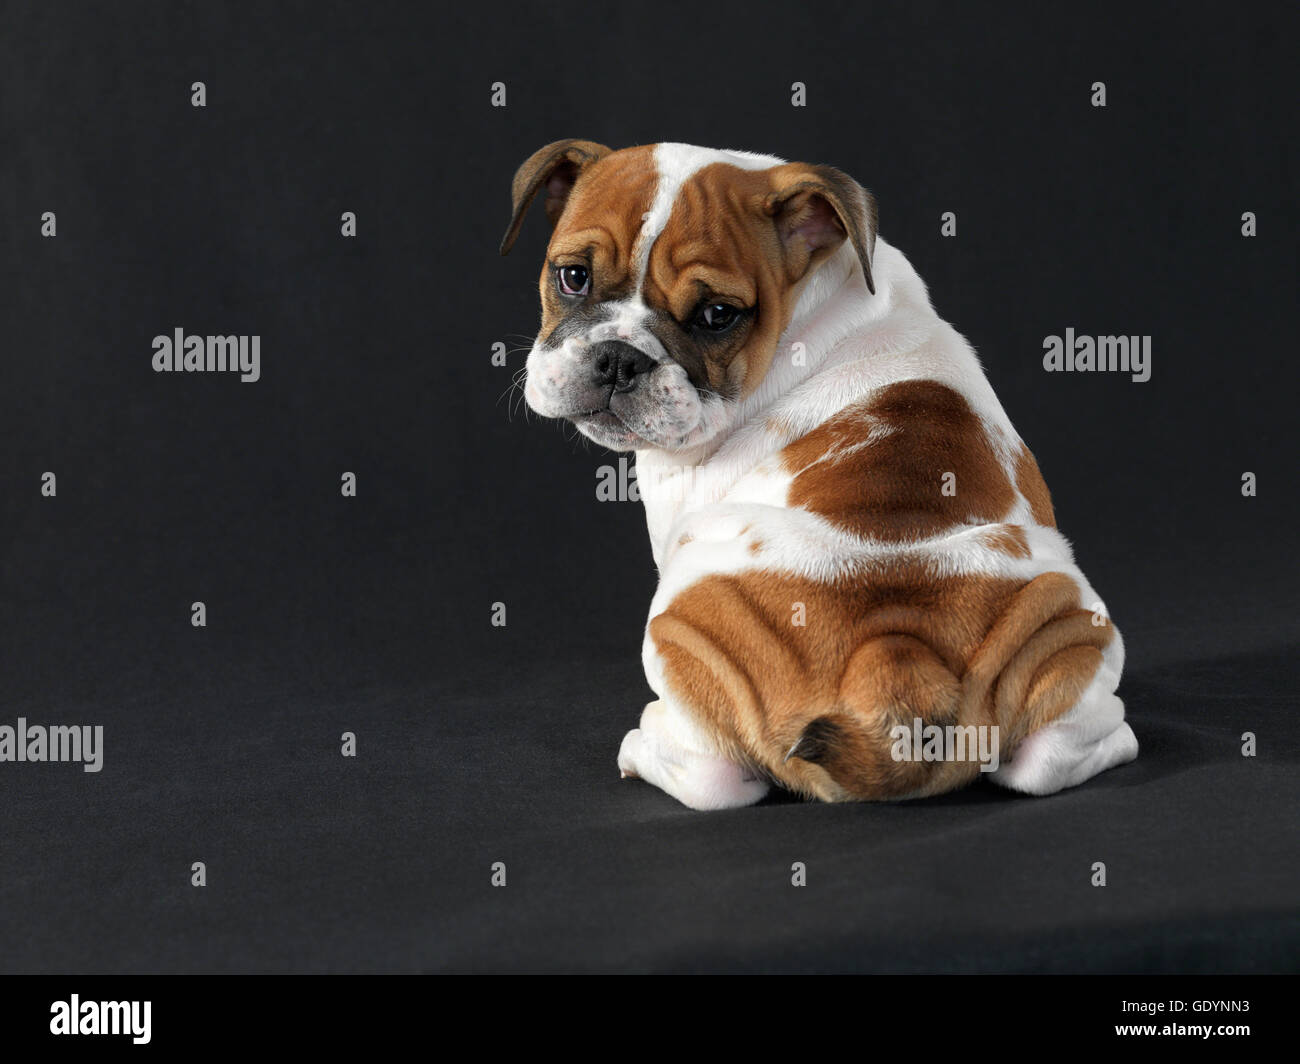 English Bulldog Puppy Looking Over Shoulder Against Black Background